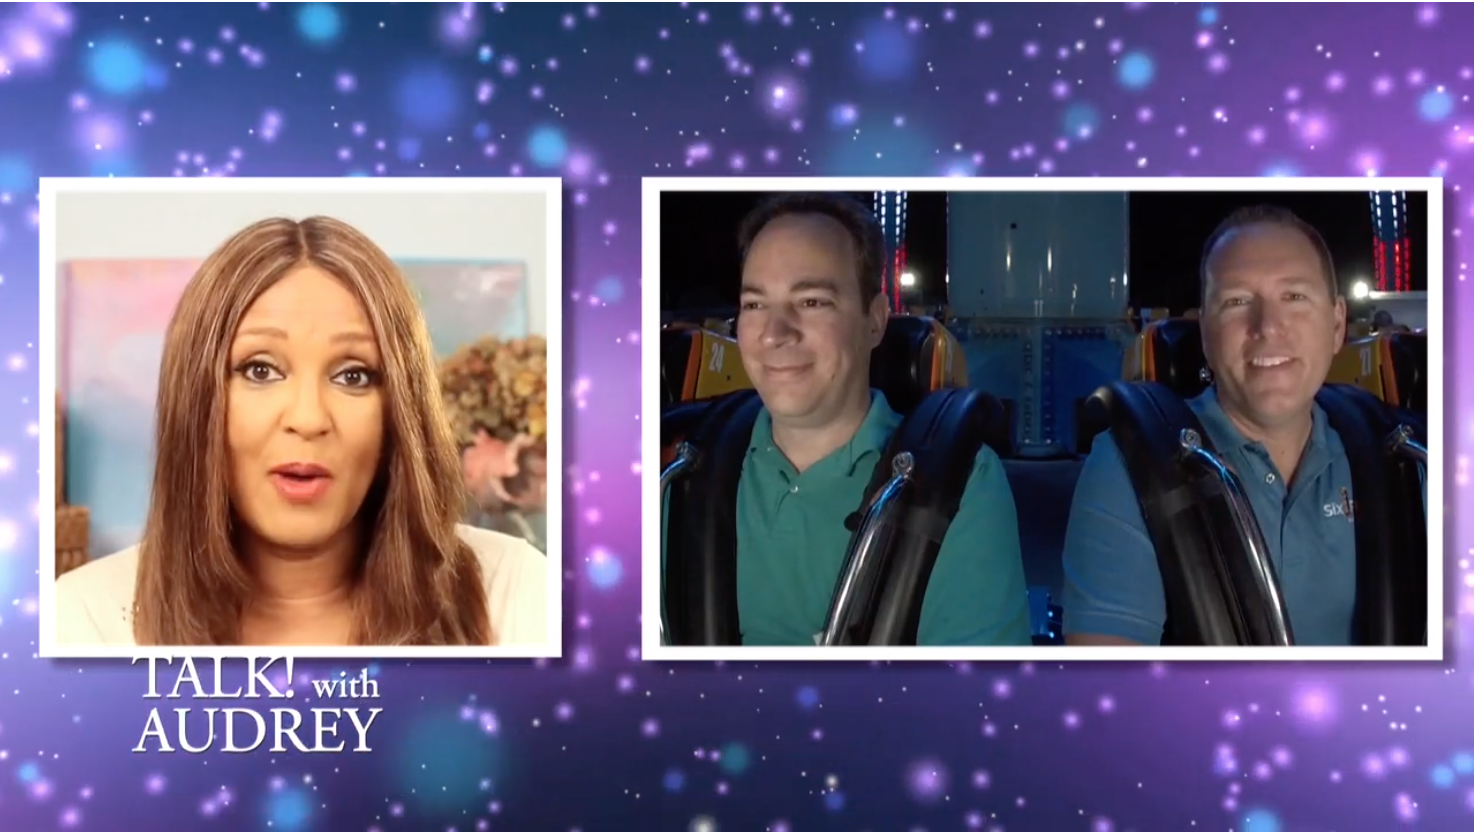 July 12-14, 2019 – TALK! with AUDREY TV